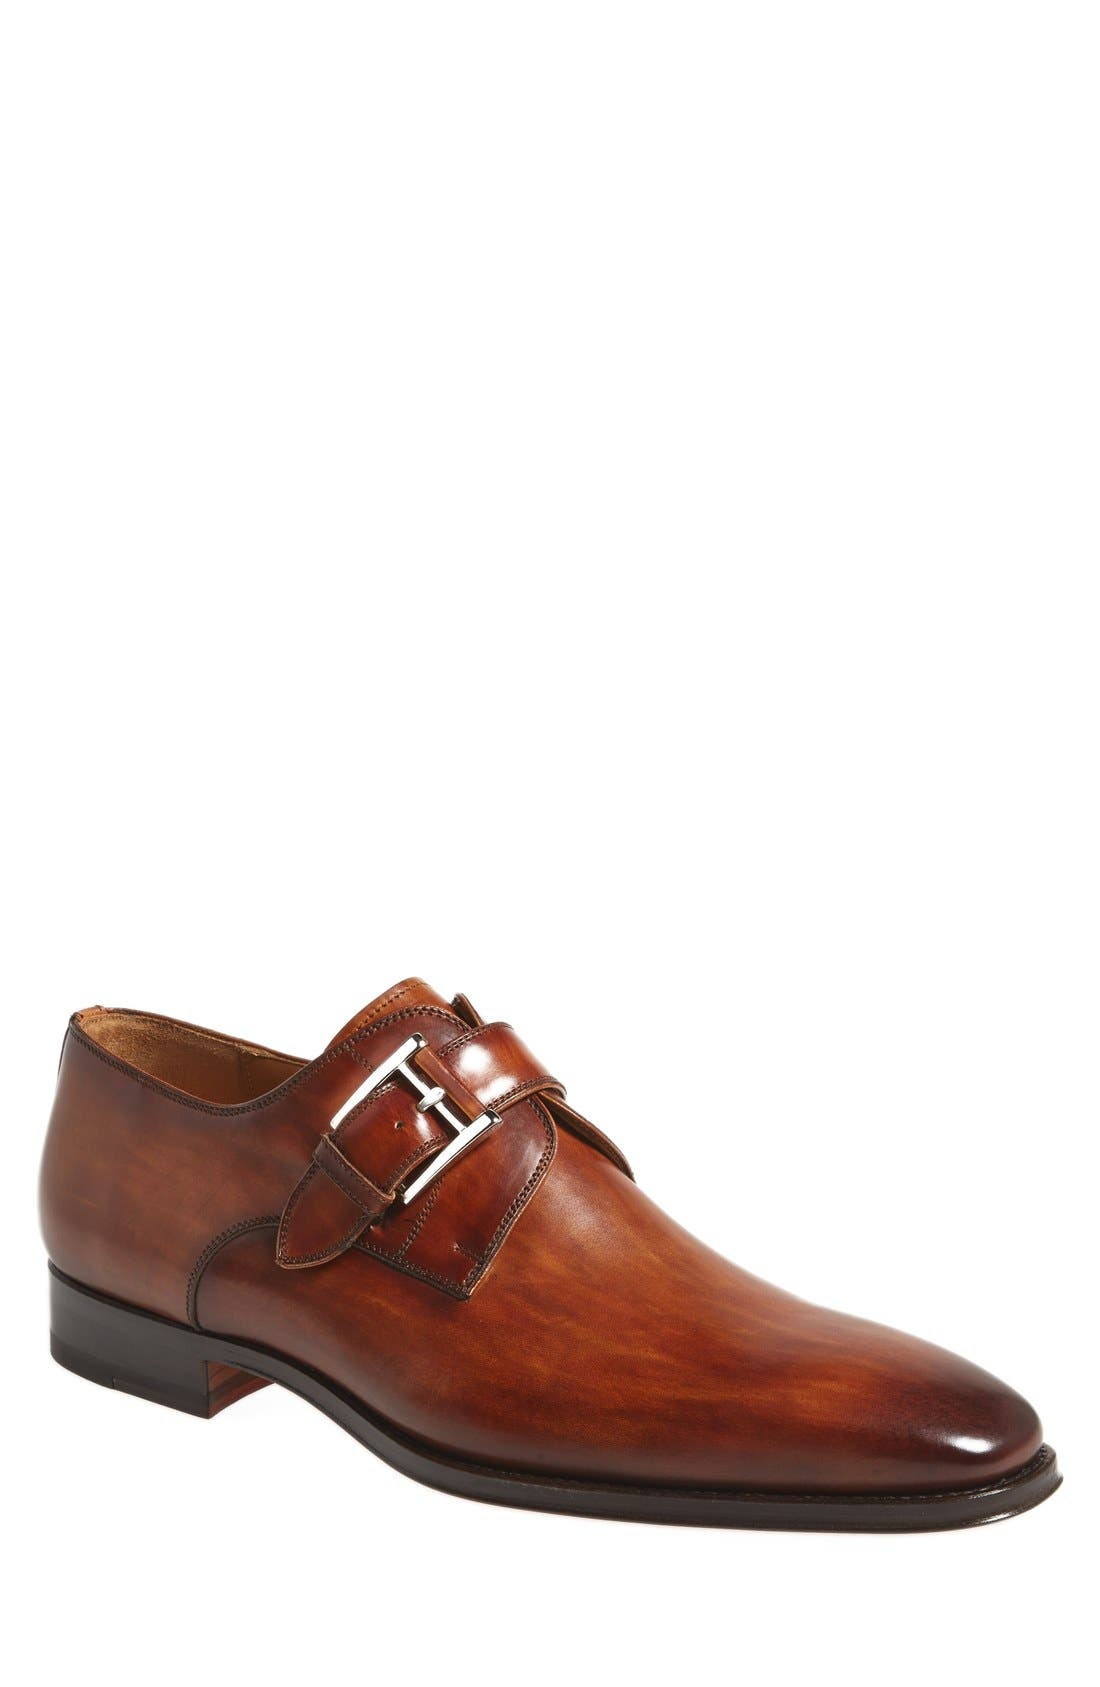 Marco Monk Strap Loafer, Main, color, CUERO BROWN LEATHER